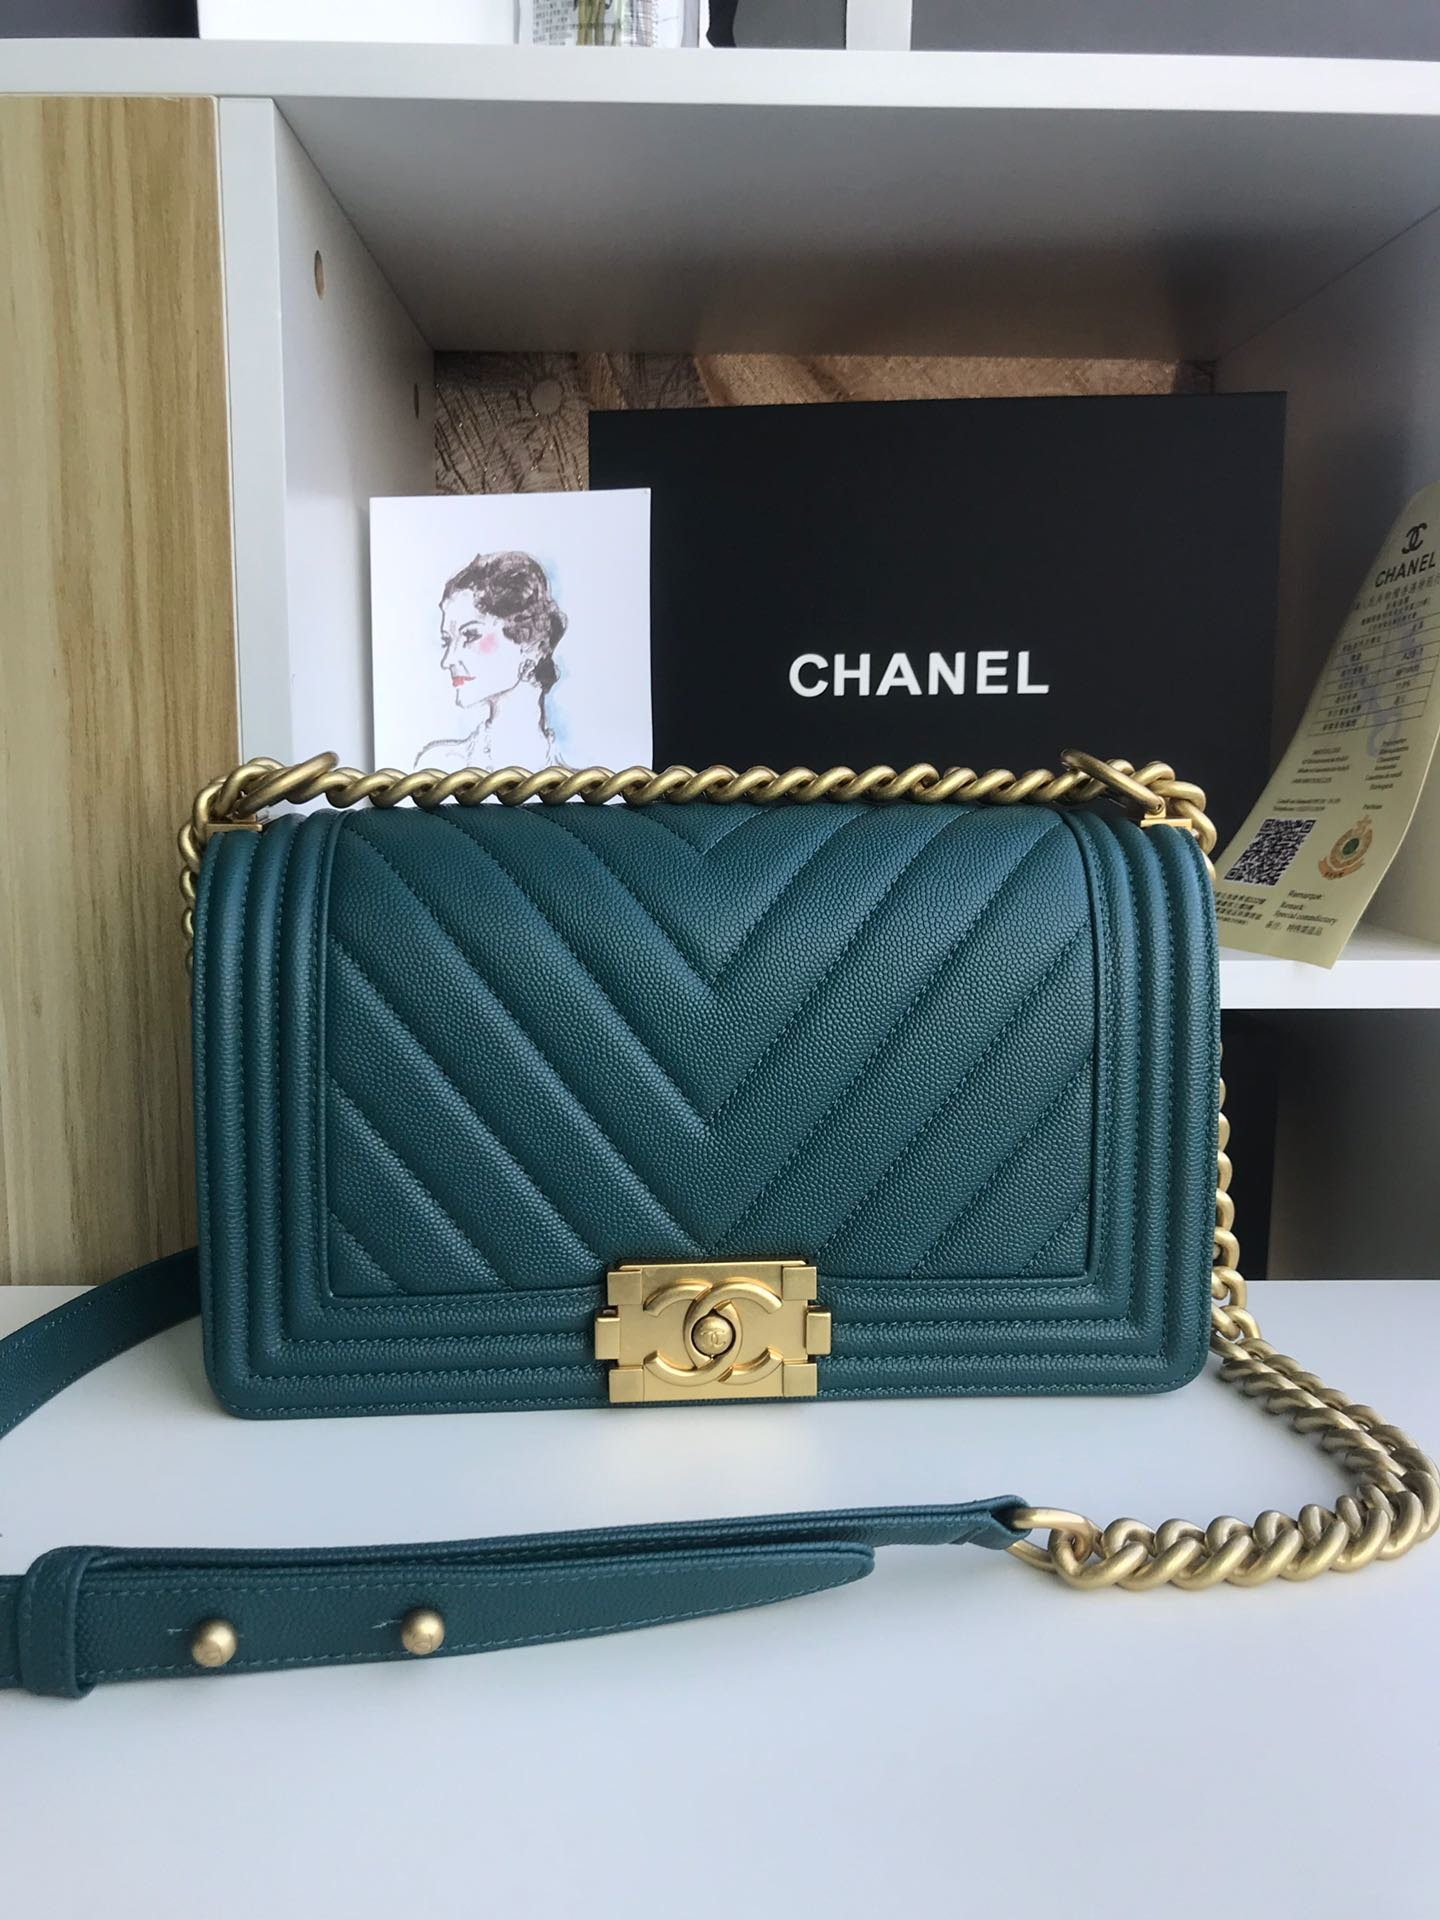 Replica 25cm V Boy Chanel Handbag Blue Grained Calfskin Gold Tone Metal